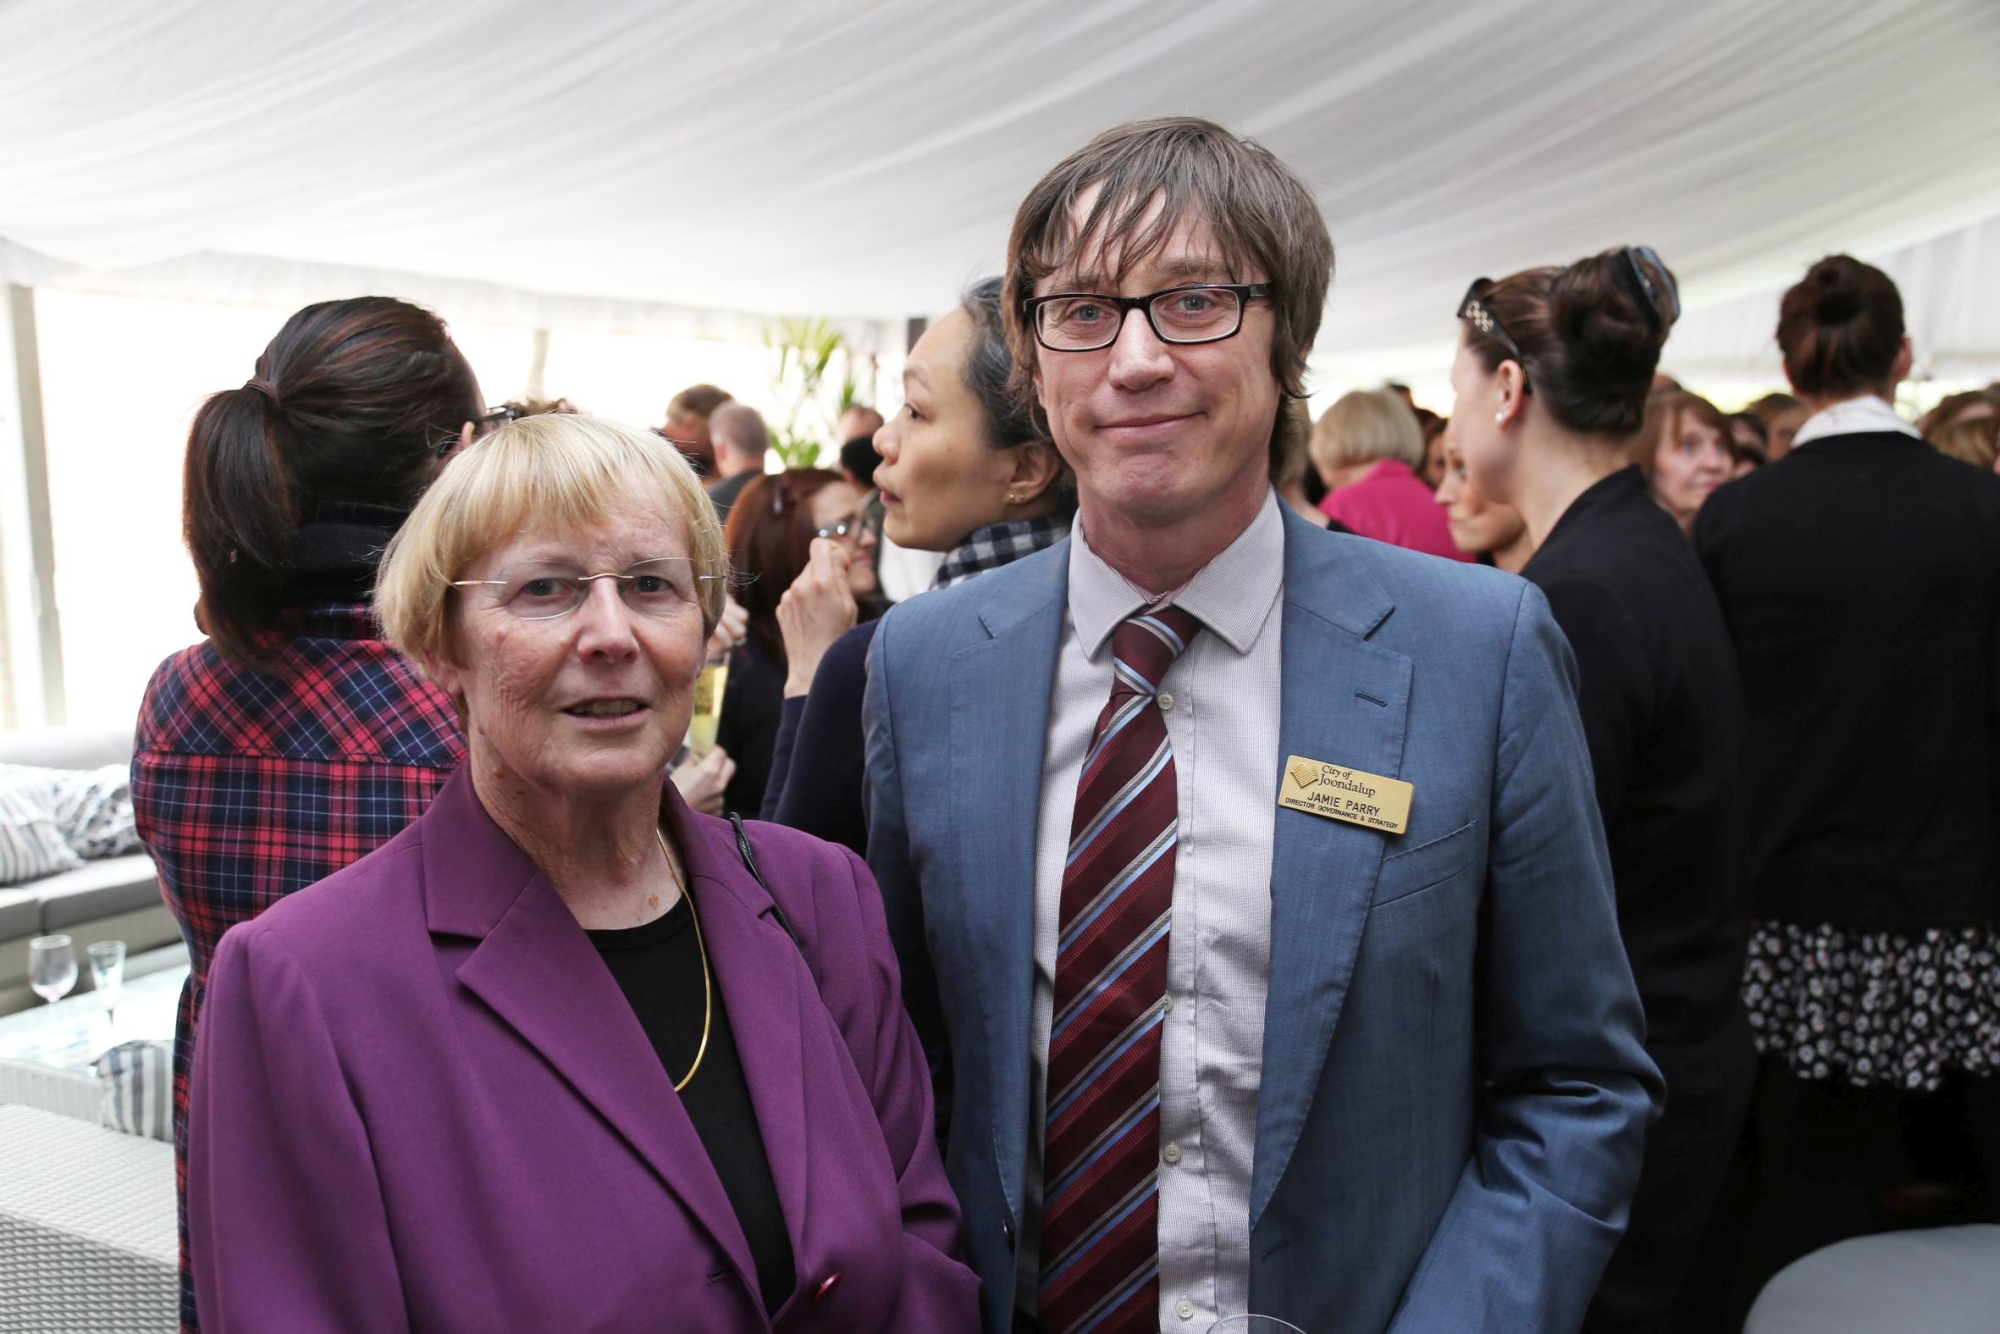 Susan King and Jamie Parry at the function to farewell Professor Cox.